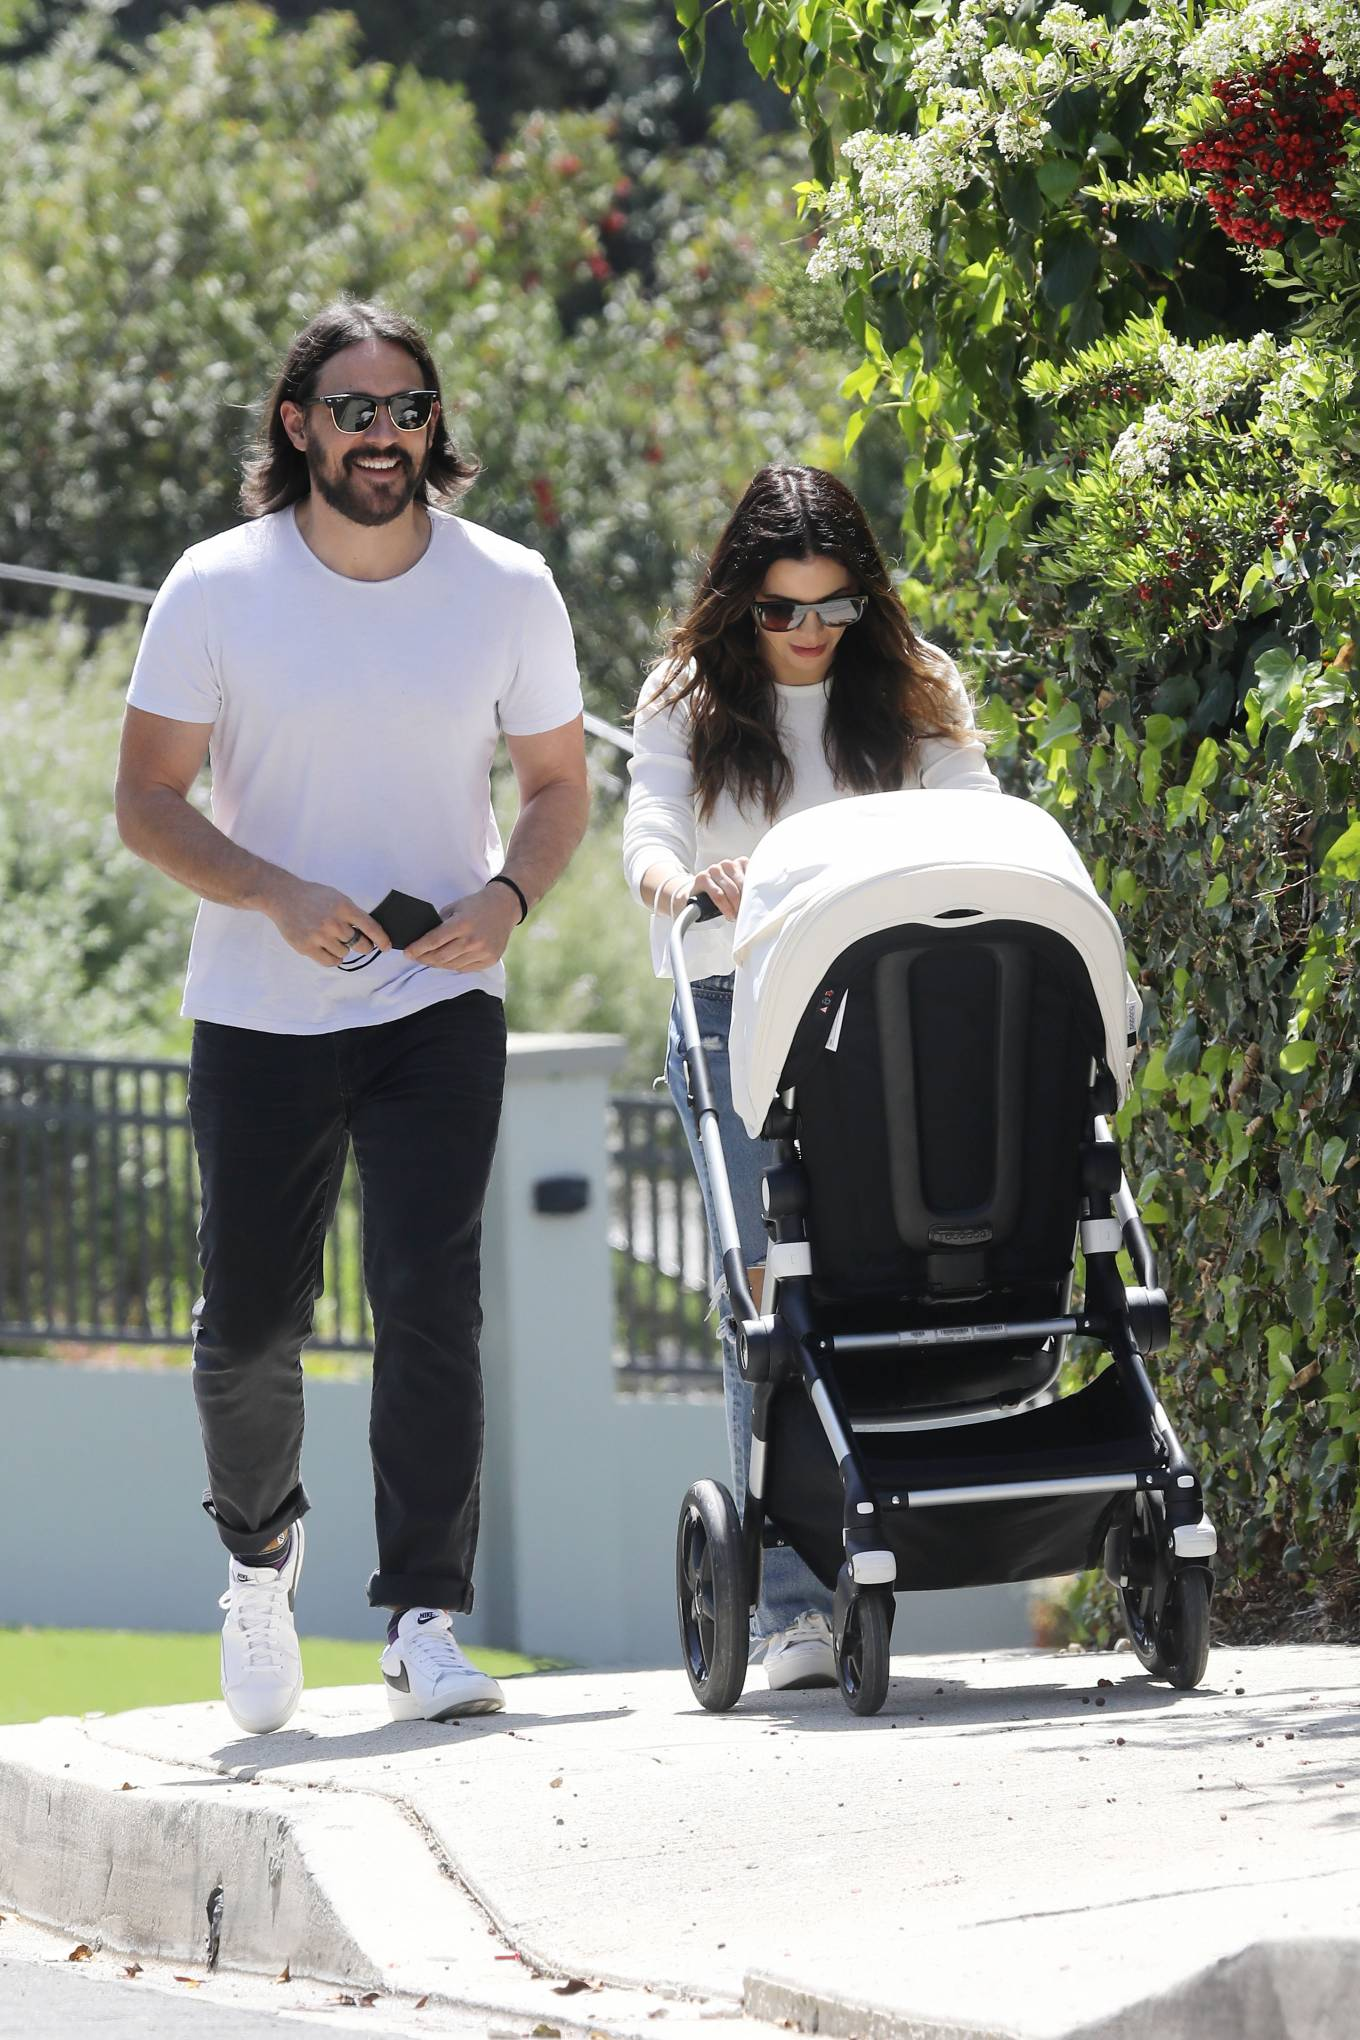 Jenna Dewan - With Steve Kazee with their baby boy out in Los Angeles